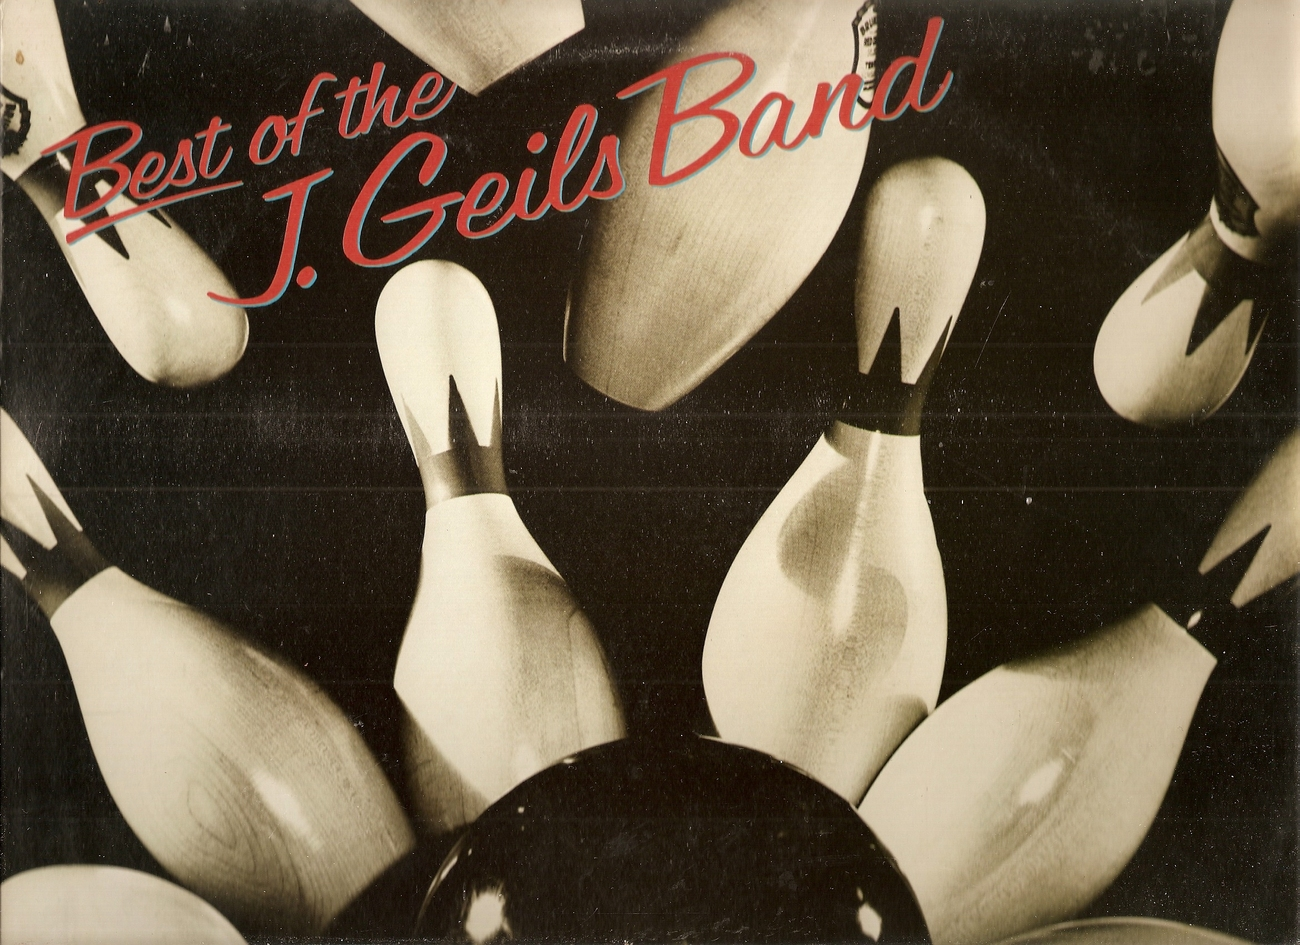 LP--J.geils Band 	The Best Of